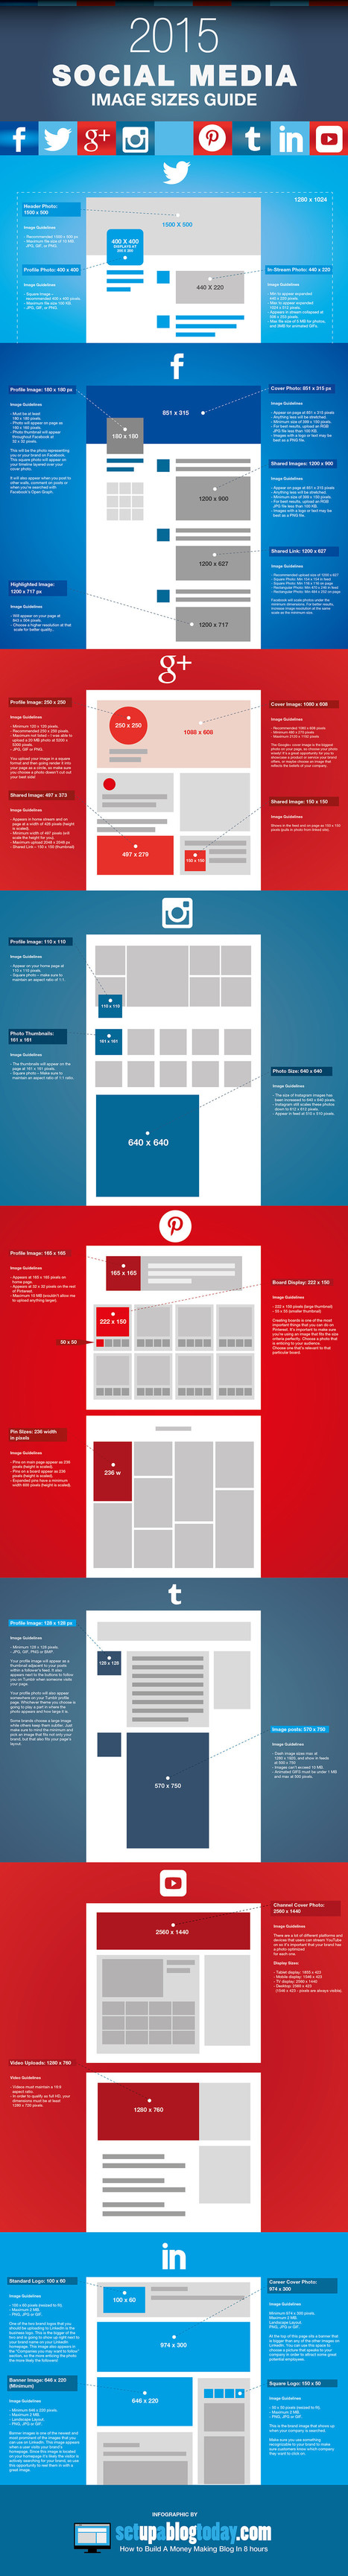 The Complete Guide to Social Media Image Sizes: 2015 (infographic) | MediosSociales | Scoop.it